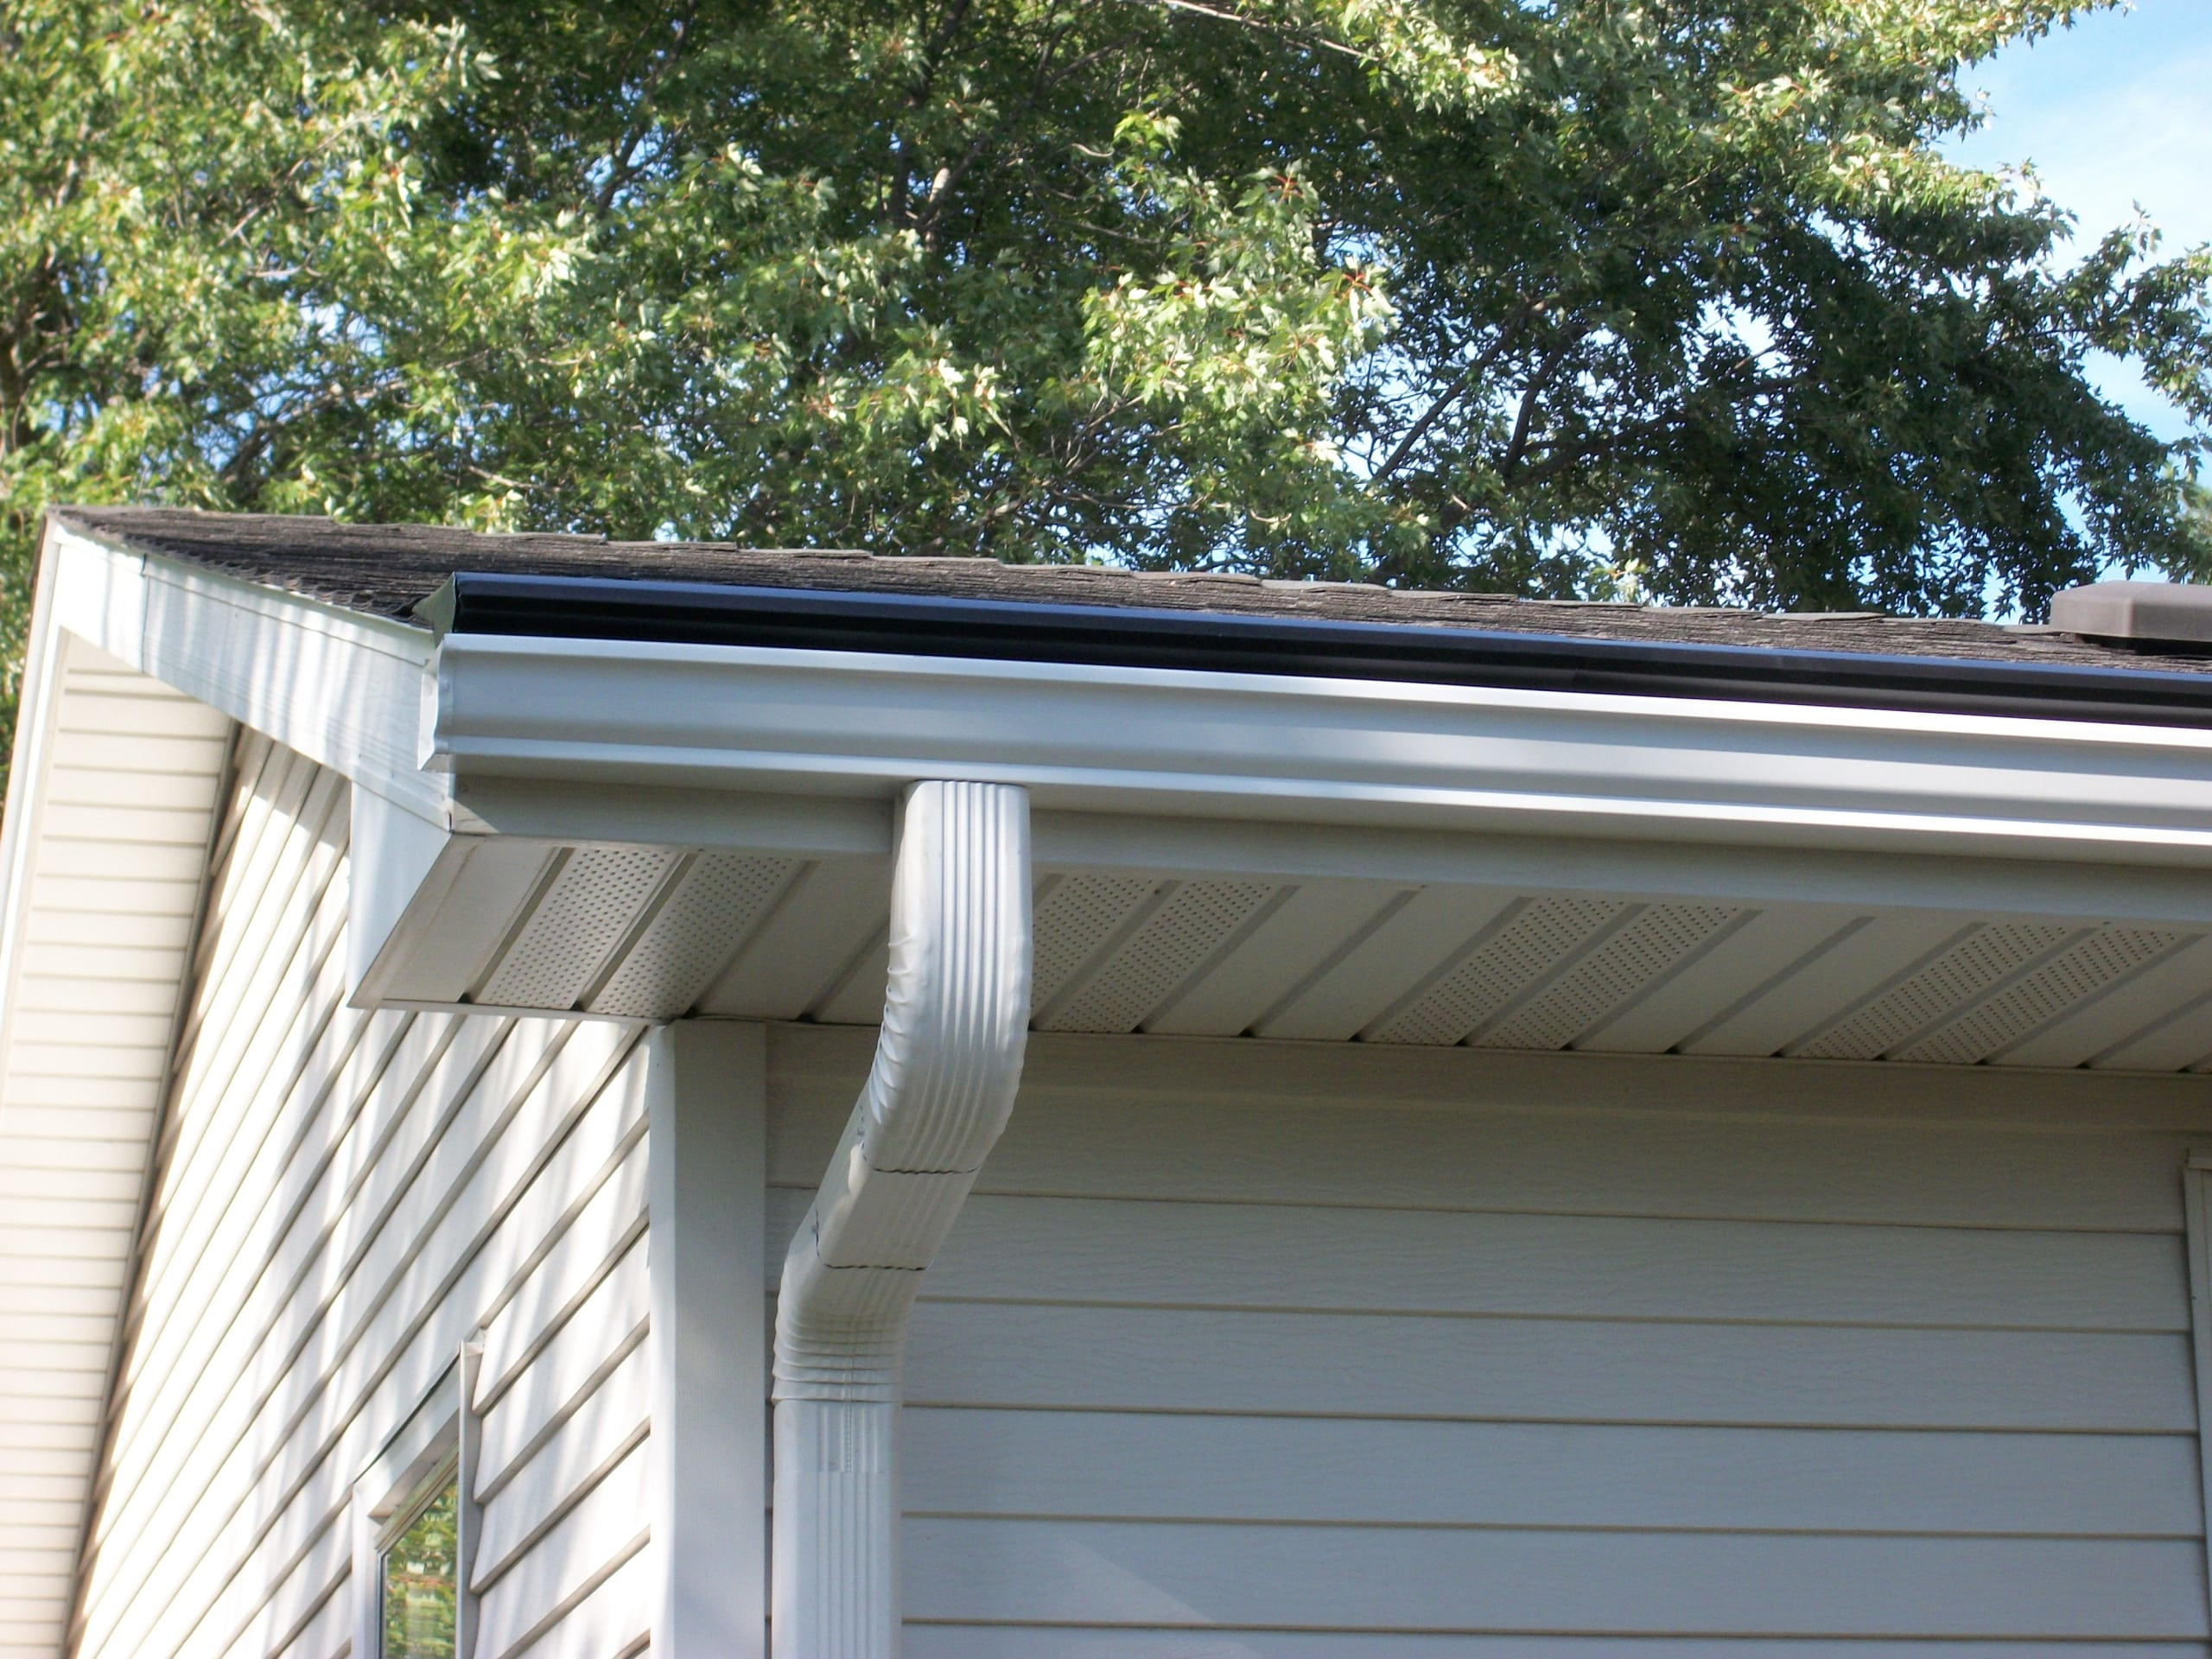 Leaflock Gutter Protection Amp Seamless Gutters River Falls Wi